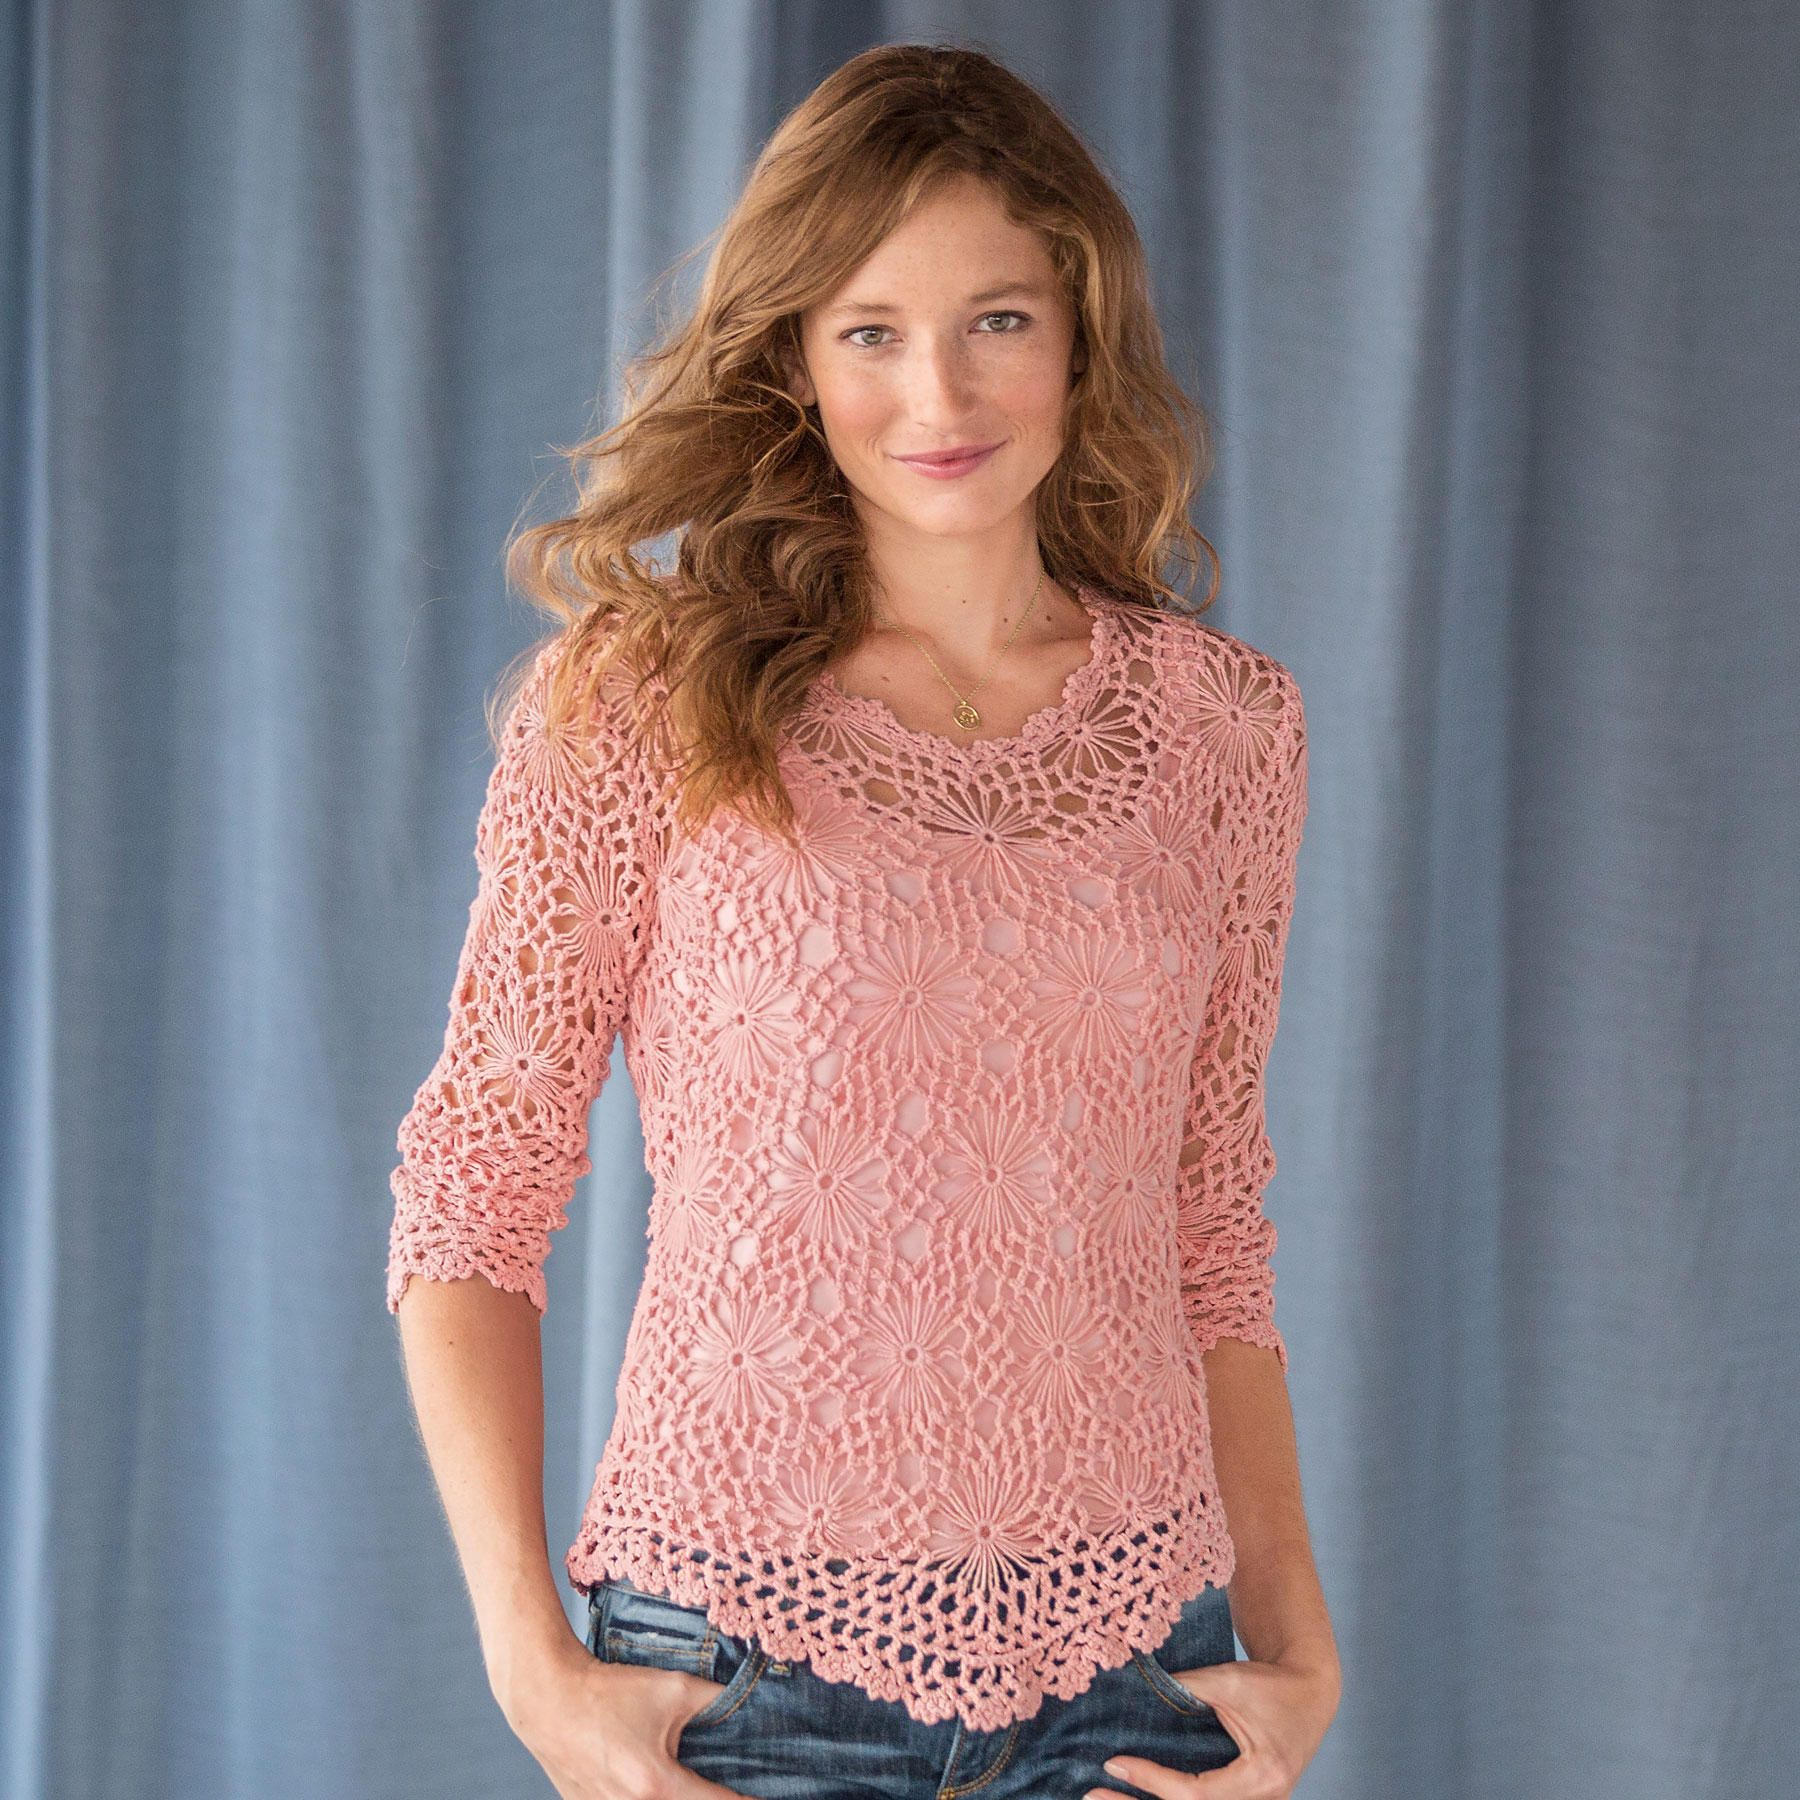 Crocheted Daisy Sweater Crocheted By Hand Into A Lacy Cotton